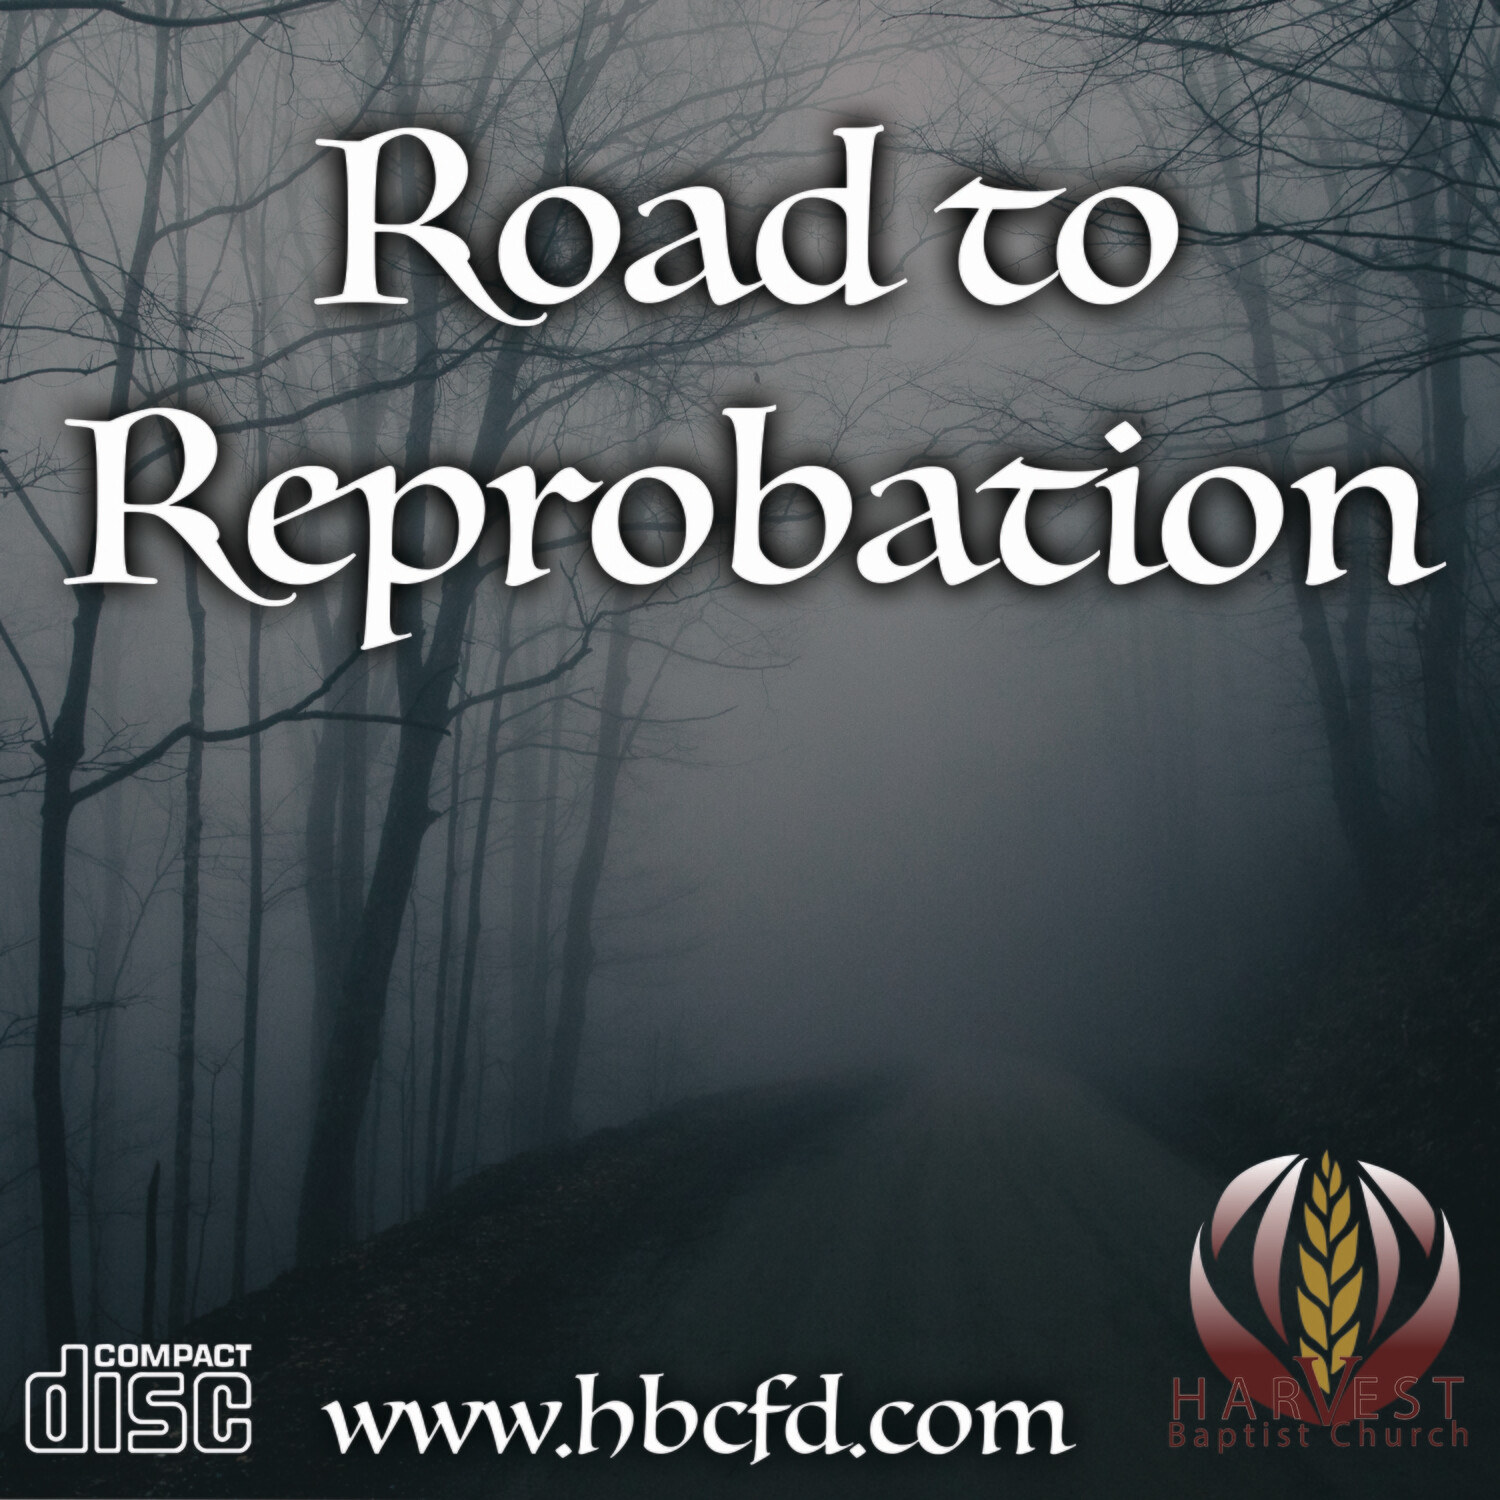 Road to Reprobation